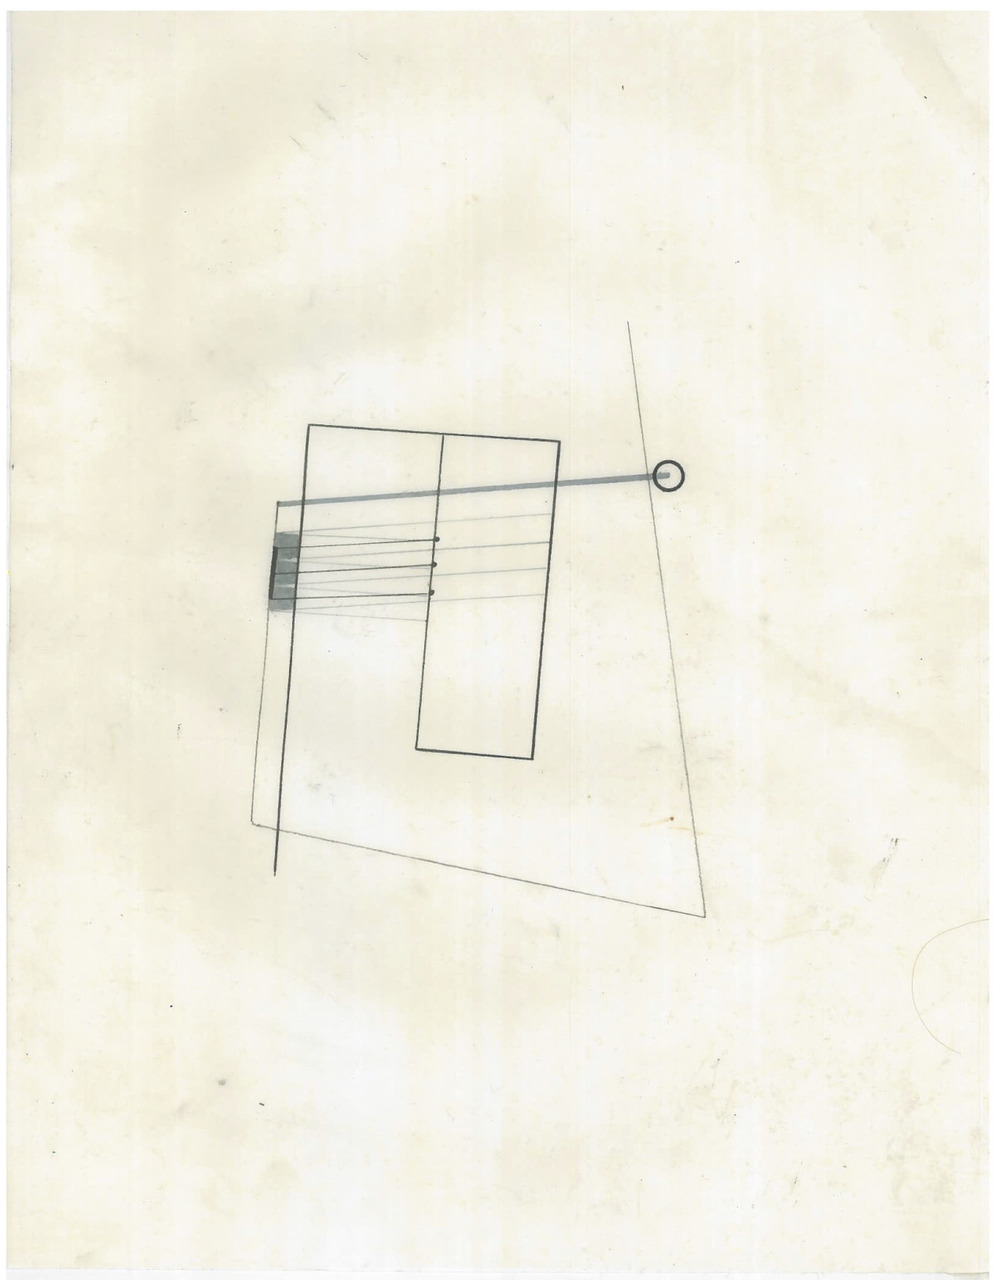 Untitled (the city, observations 17B)  Pencil on oiled fabriano paper  279mm x 216mm  December 2013